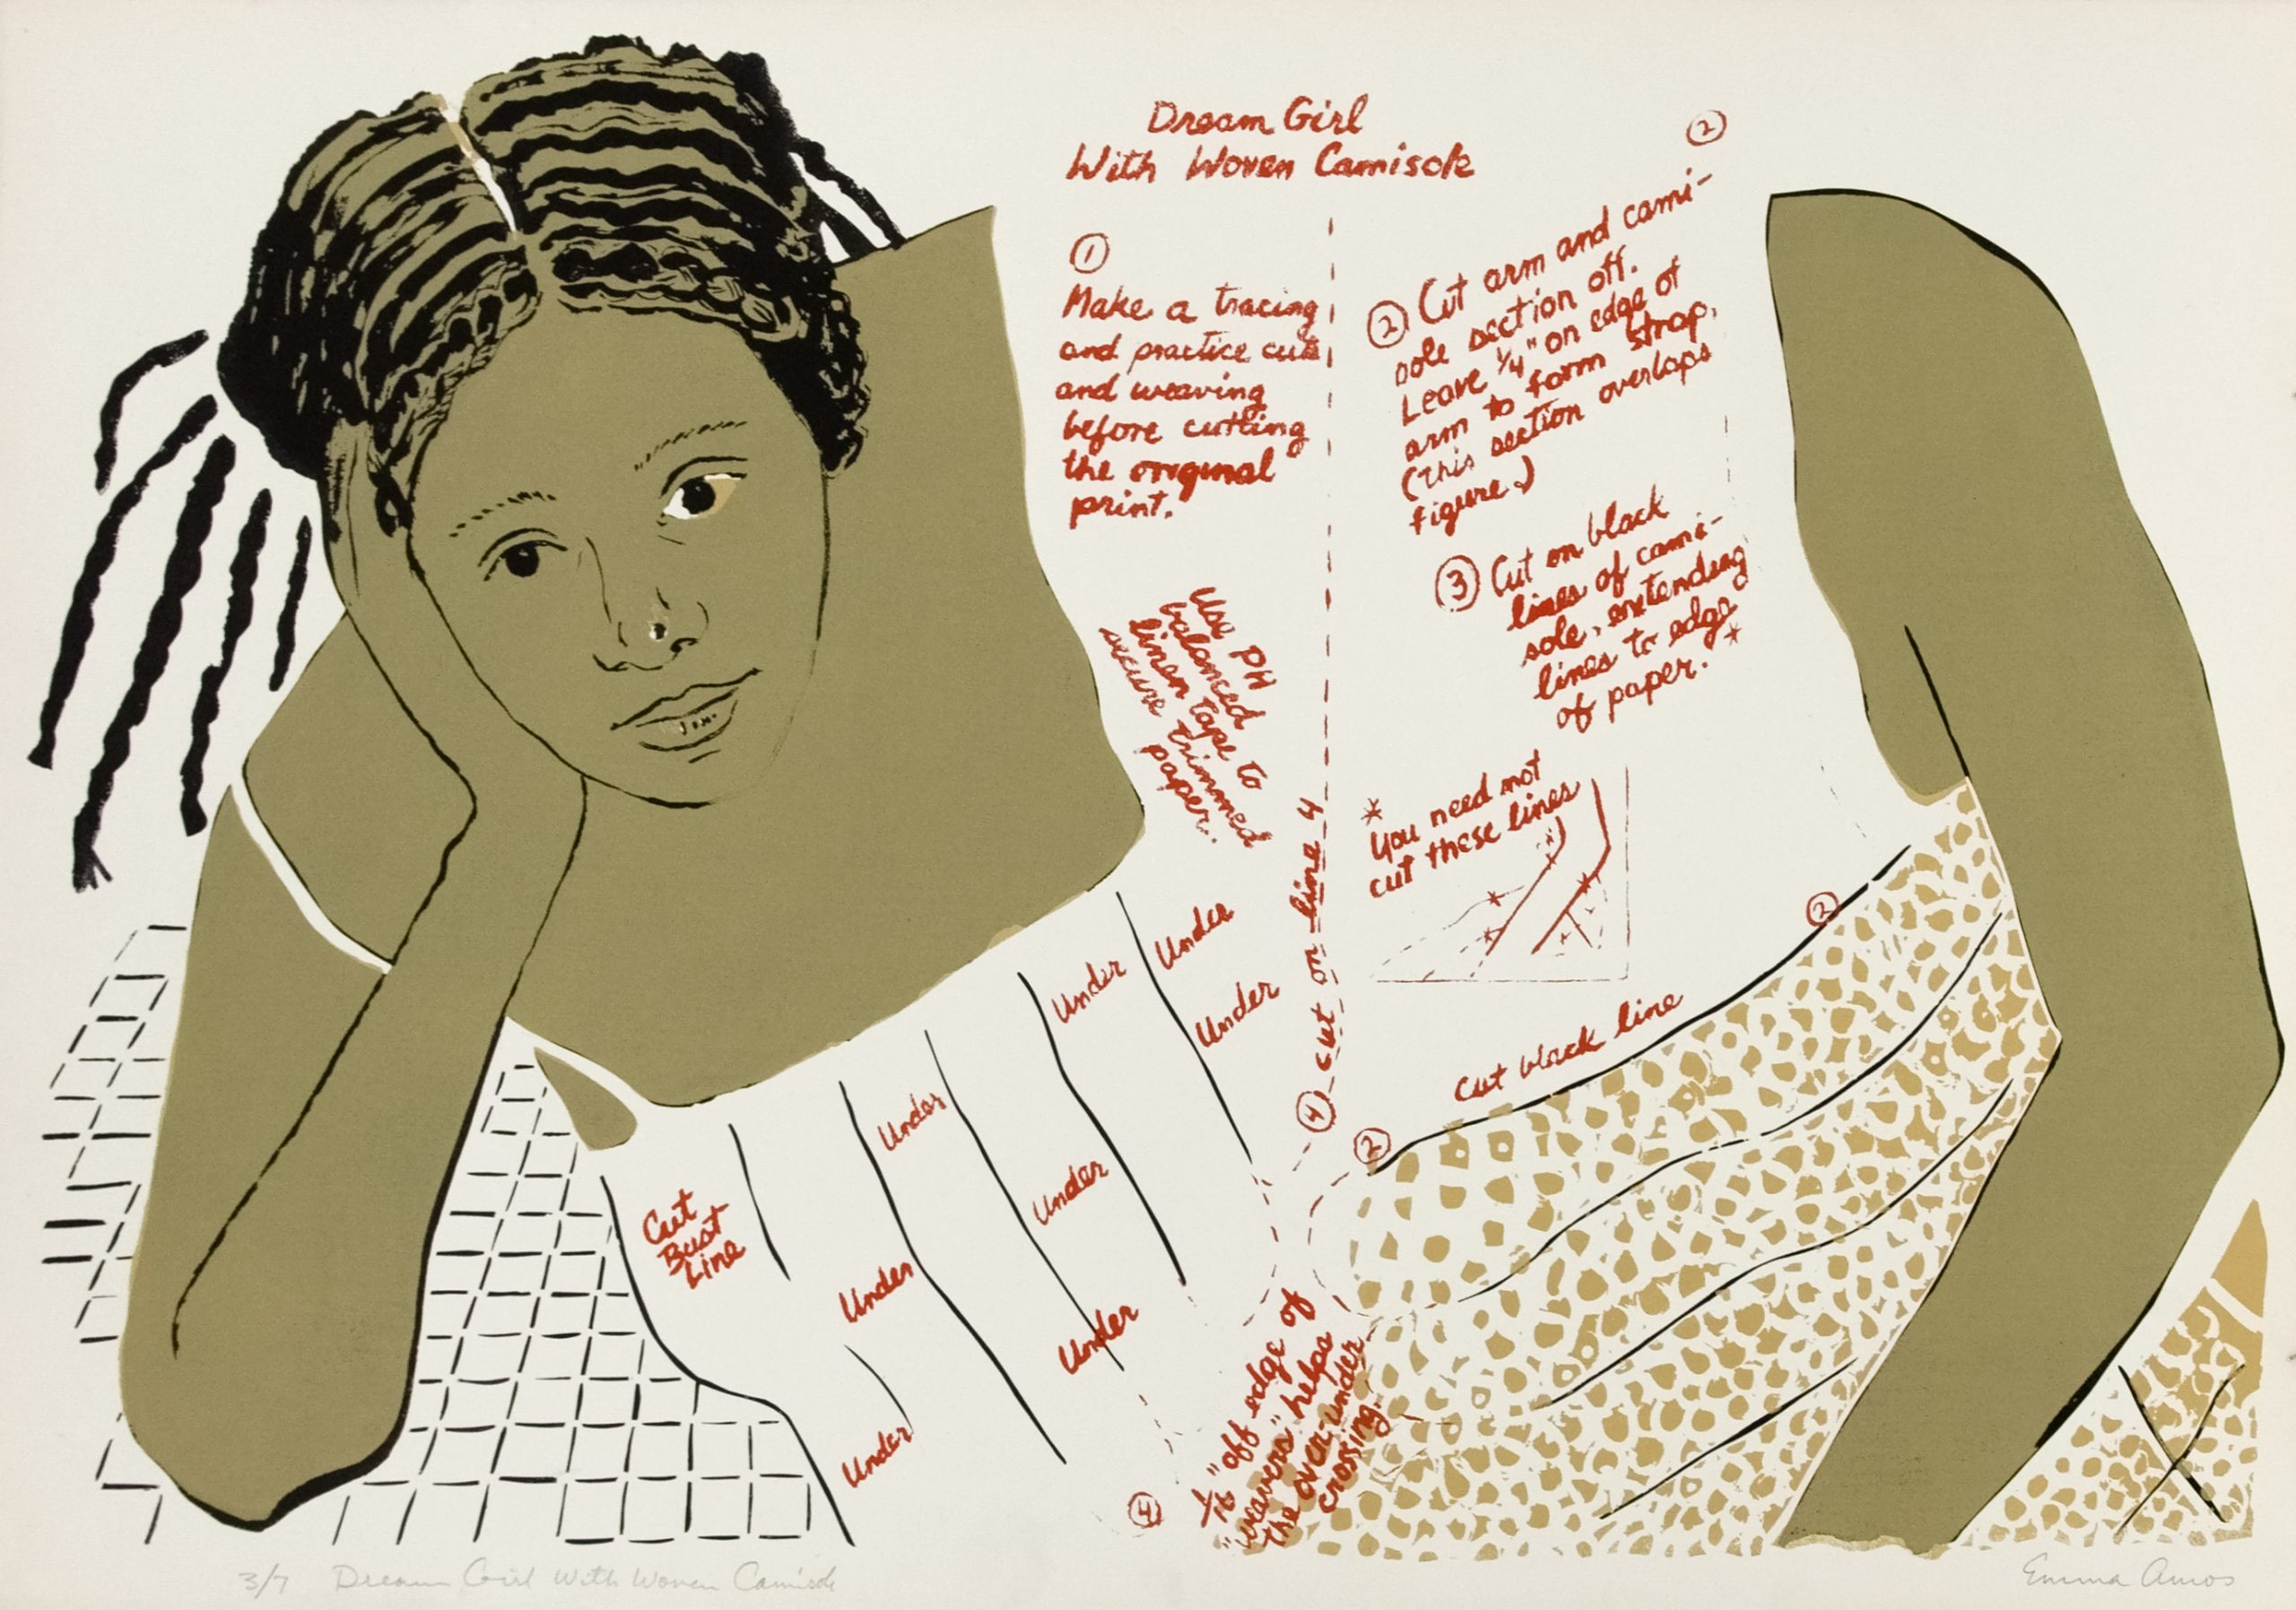 A Black girl leans on her hand, with paper doll dimensions written on her dress.